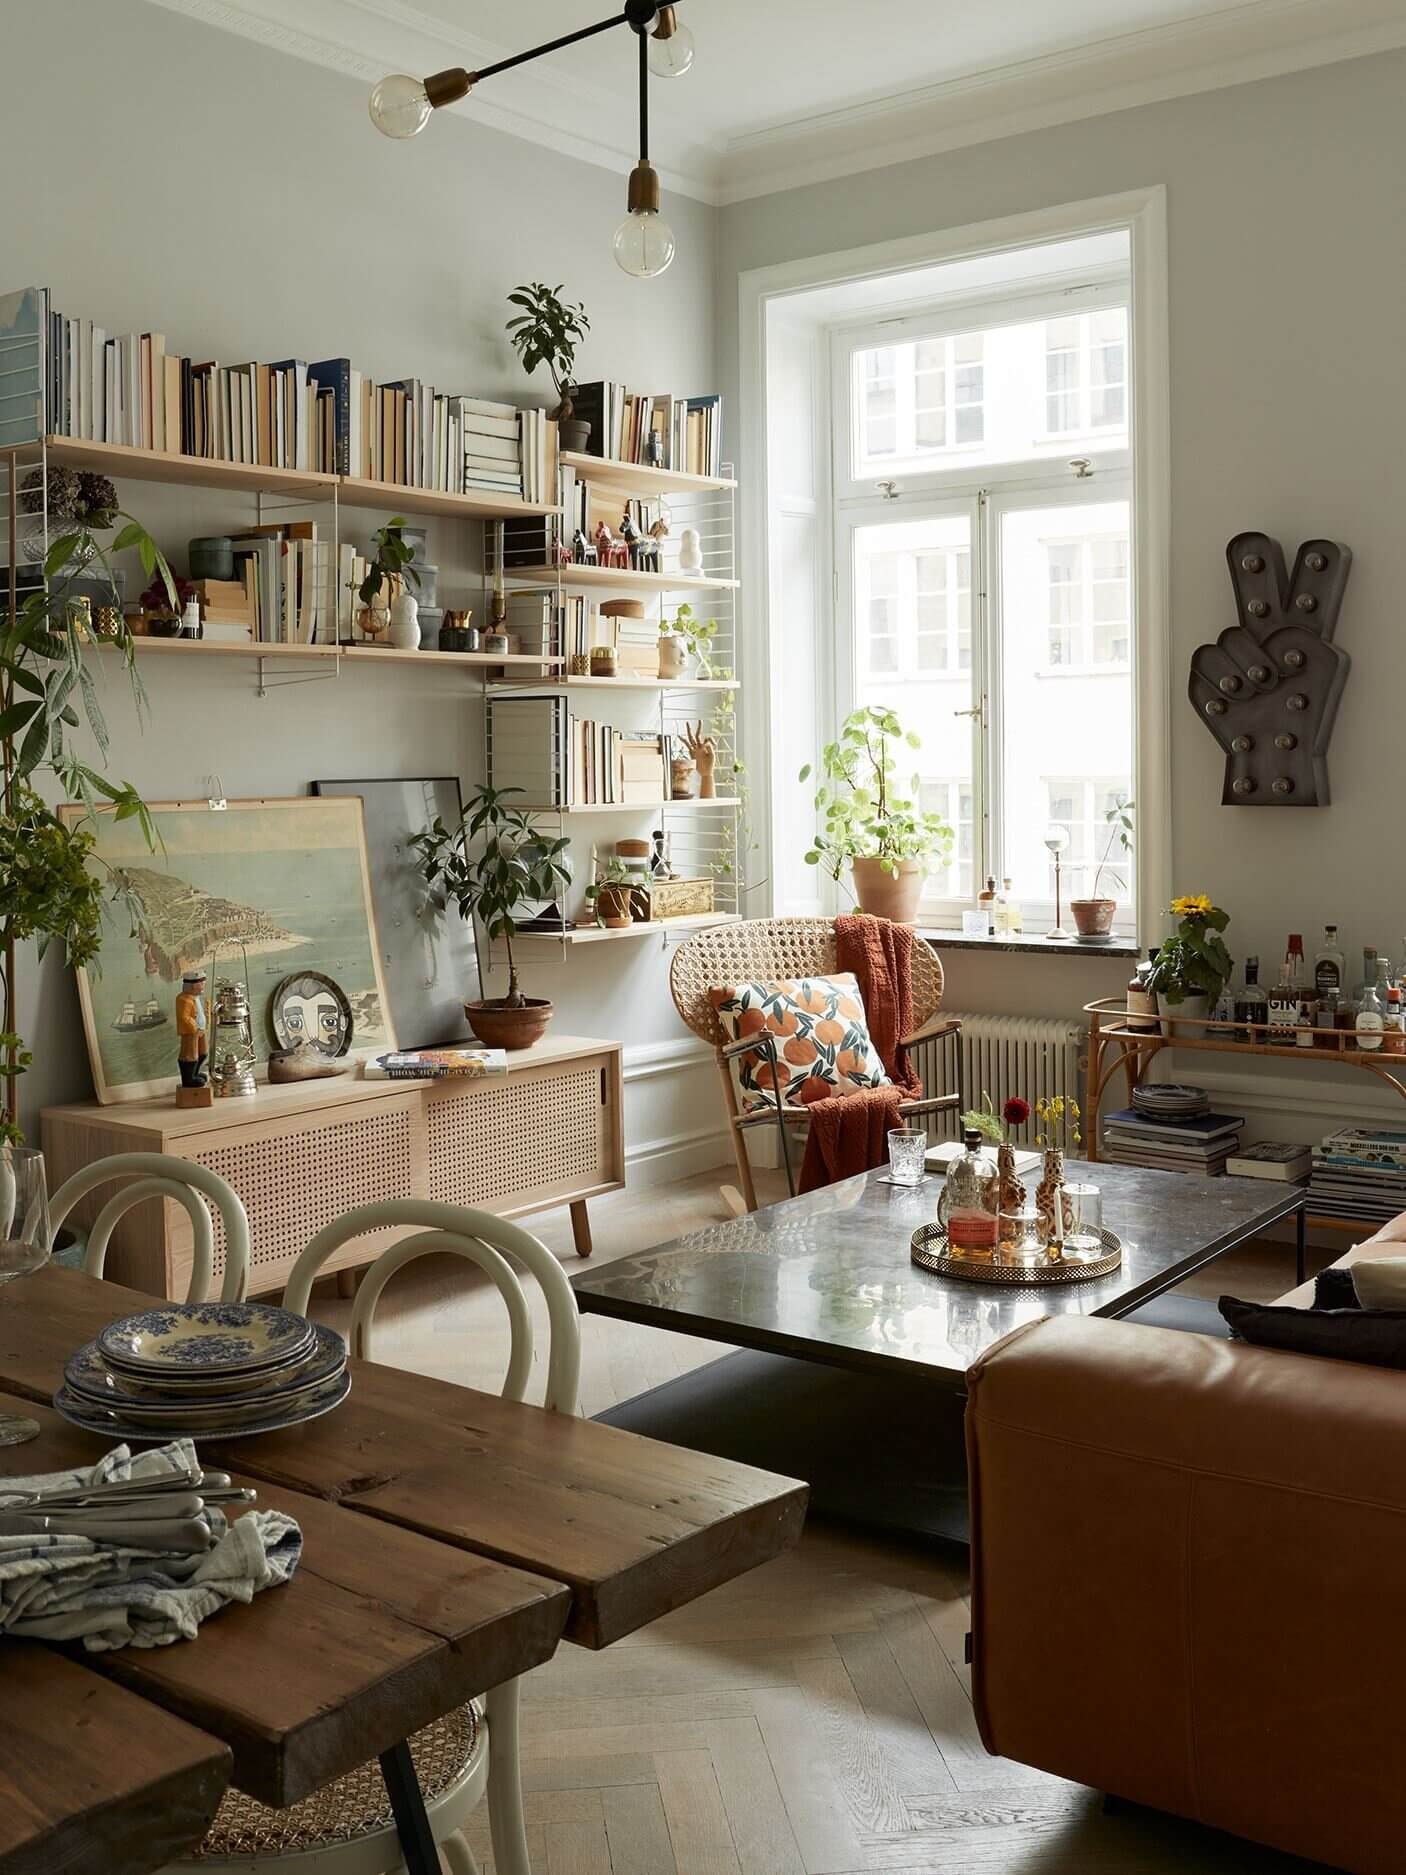 A Light Scandinavian Apartment with Vintage Touches